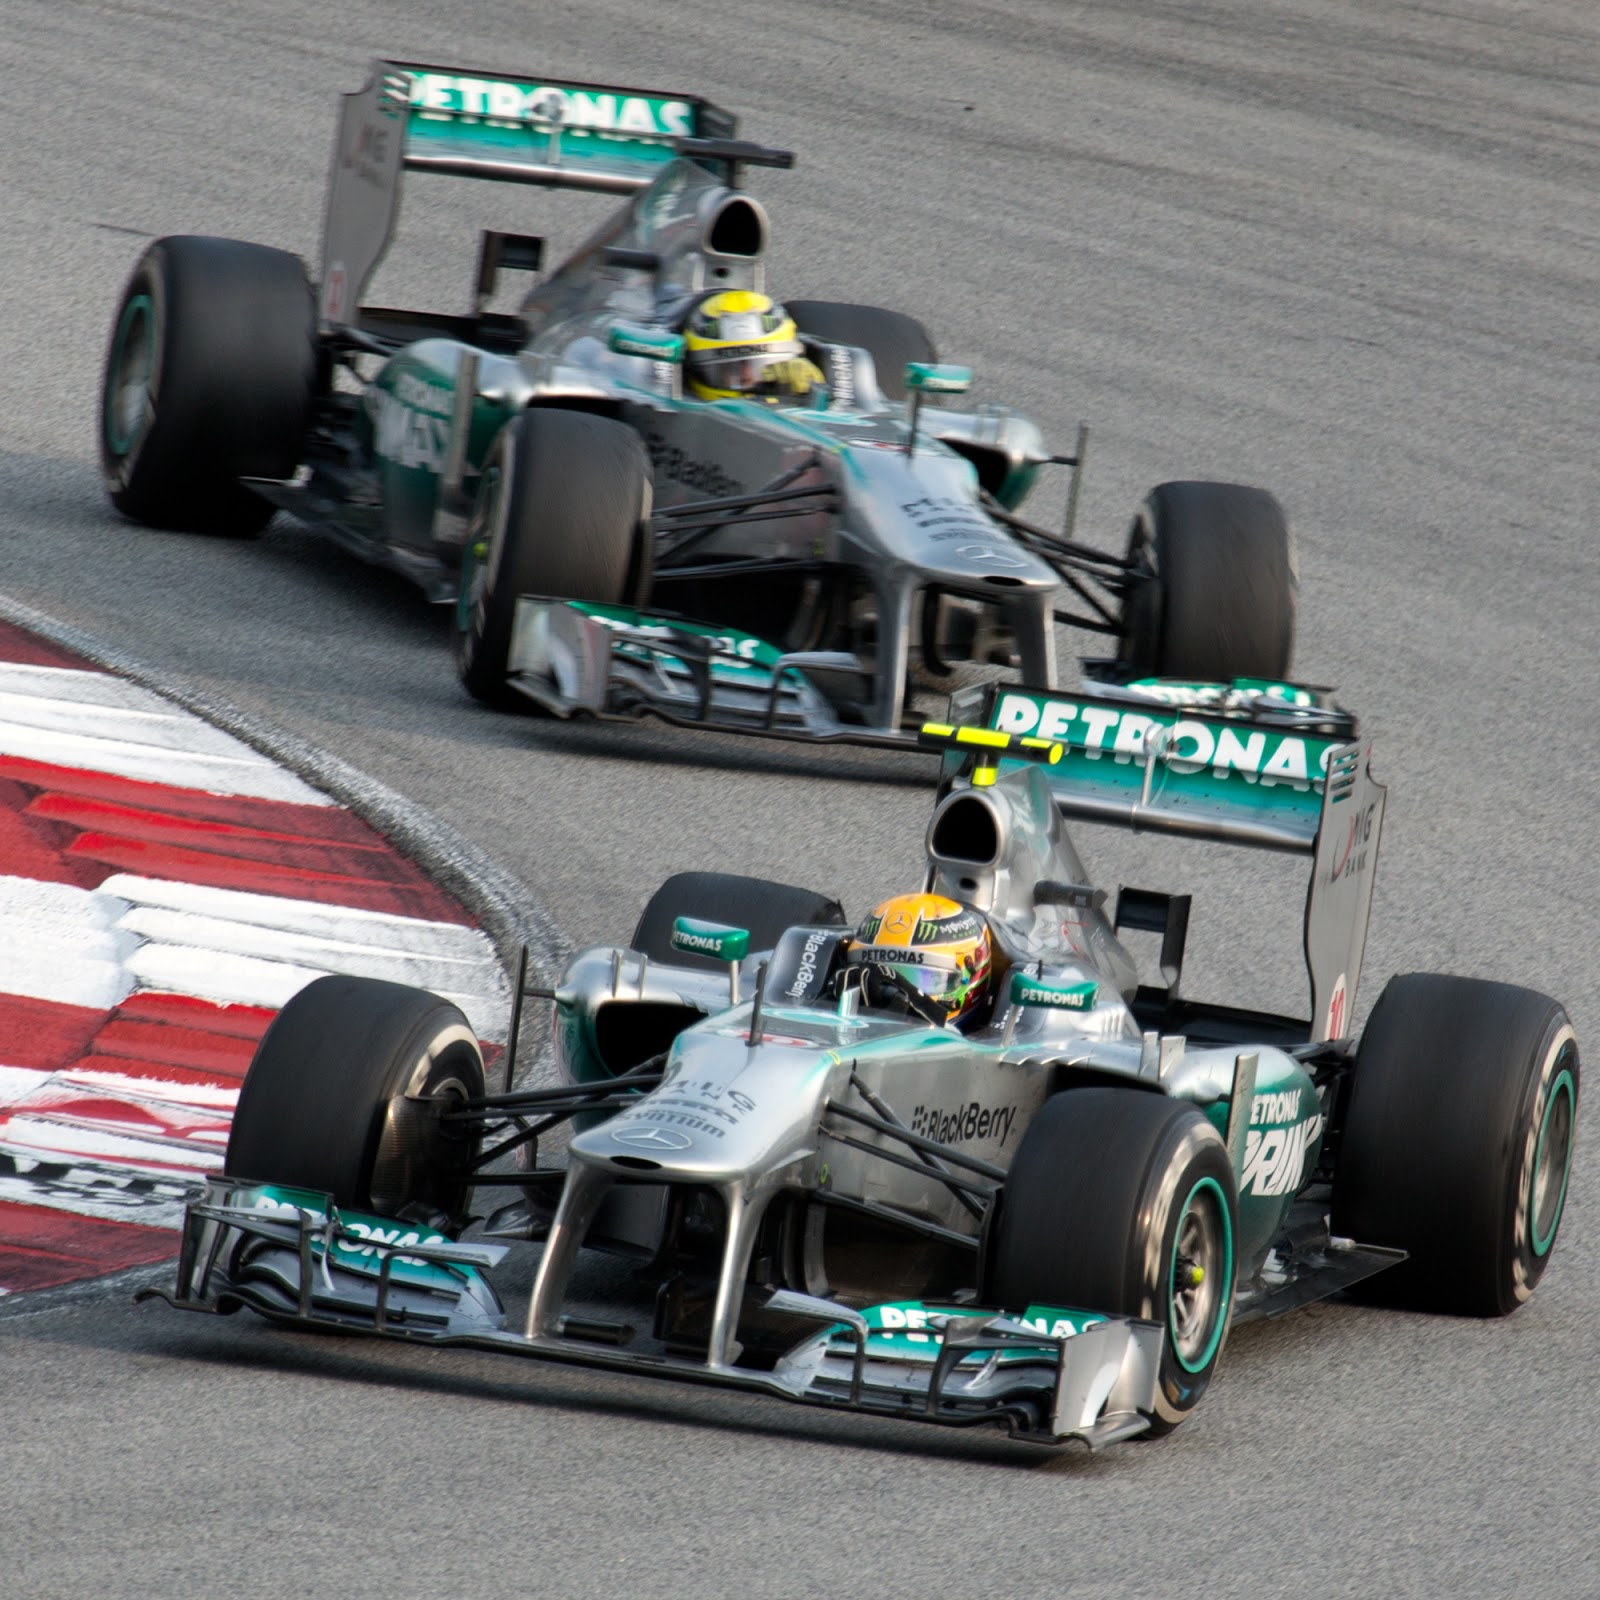 ee311d2b65 Today was once again all about Mercedes, with Lewis coming out on top.  Credit: Morio / CC